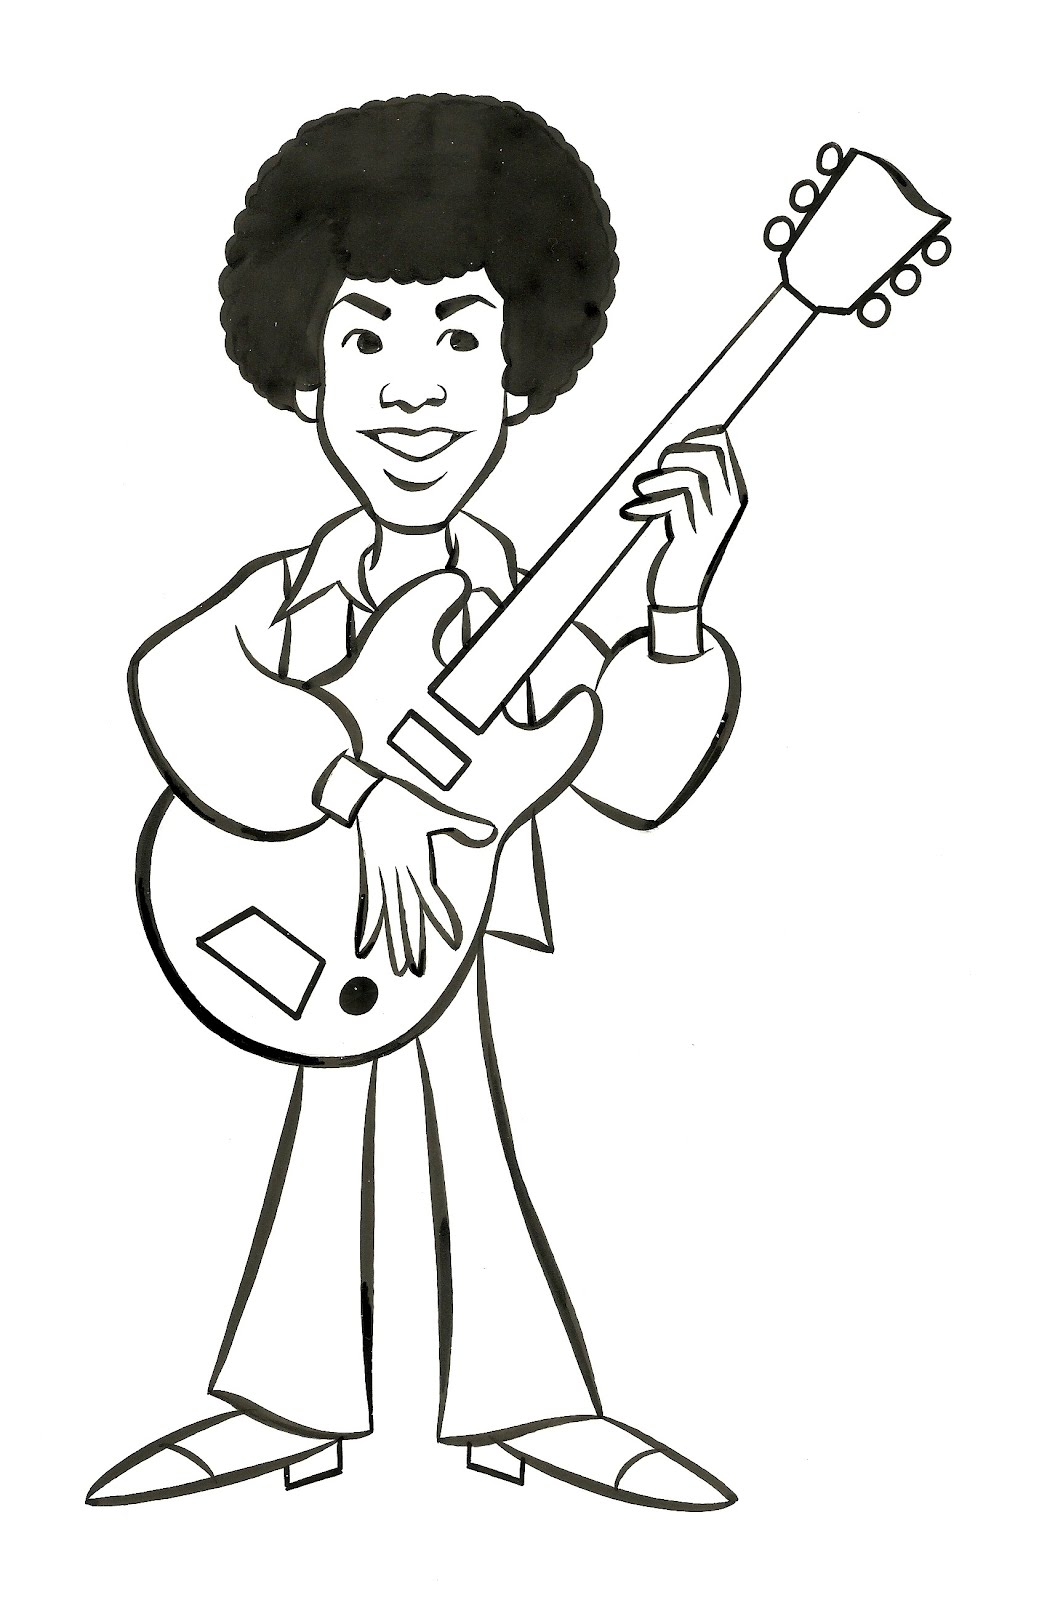 patrick owsley cartoon art and more   jackson 5